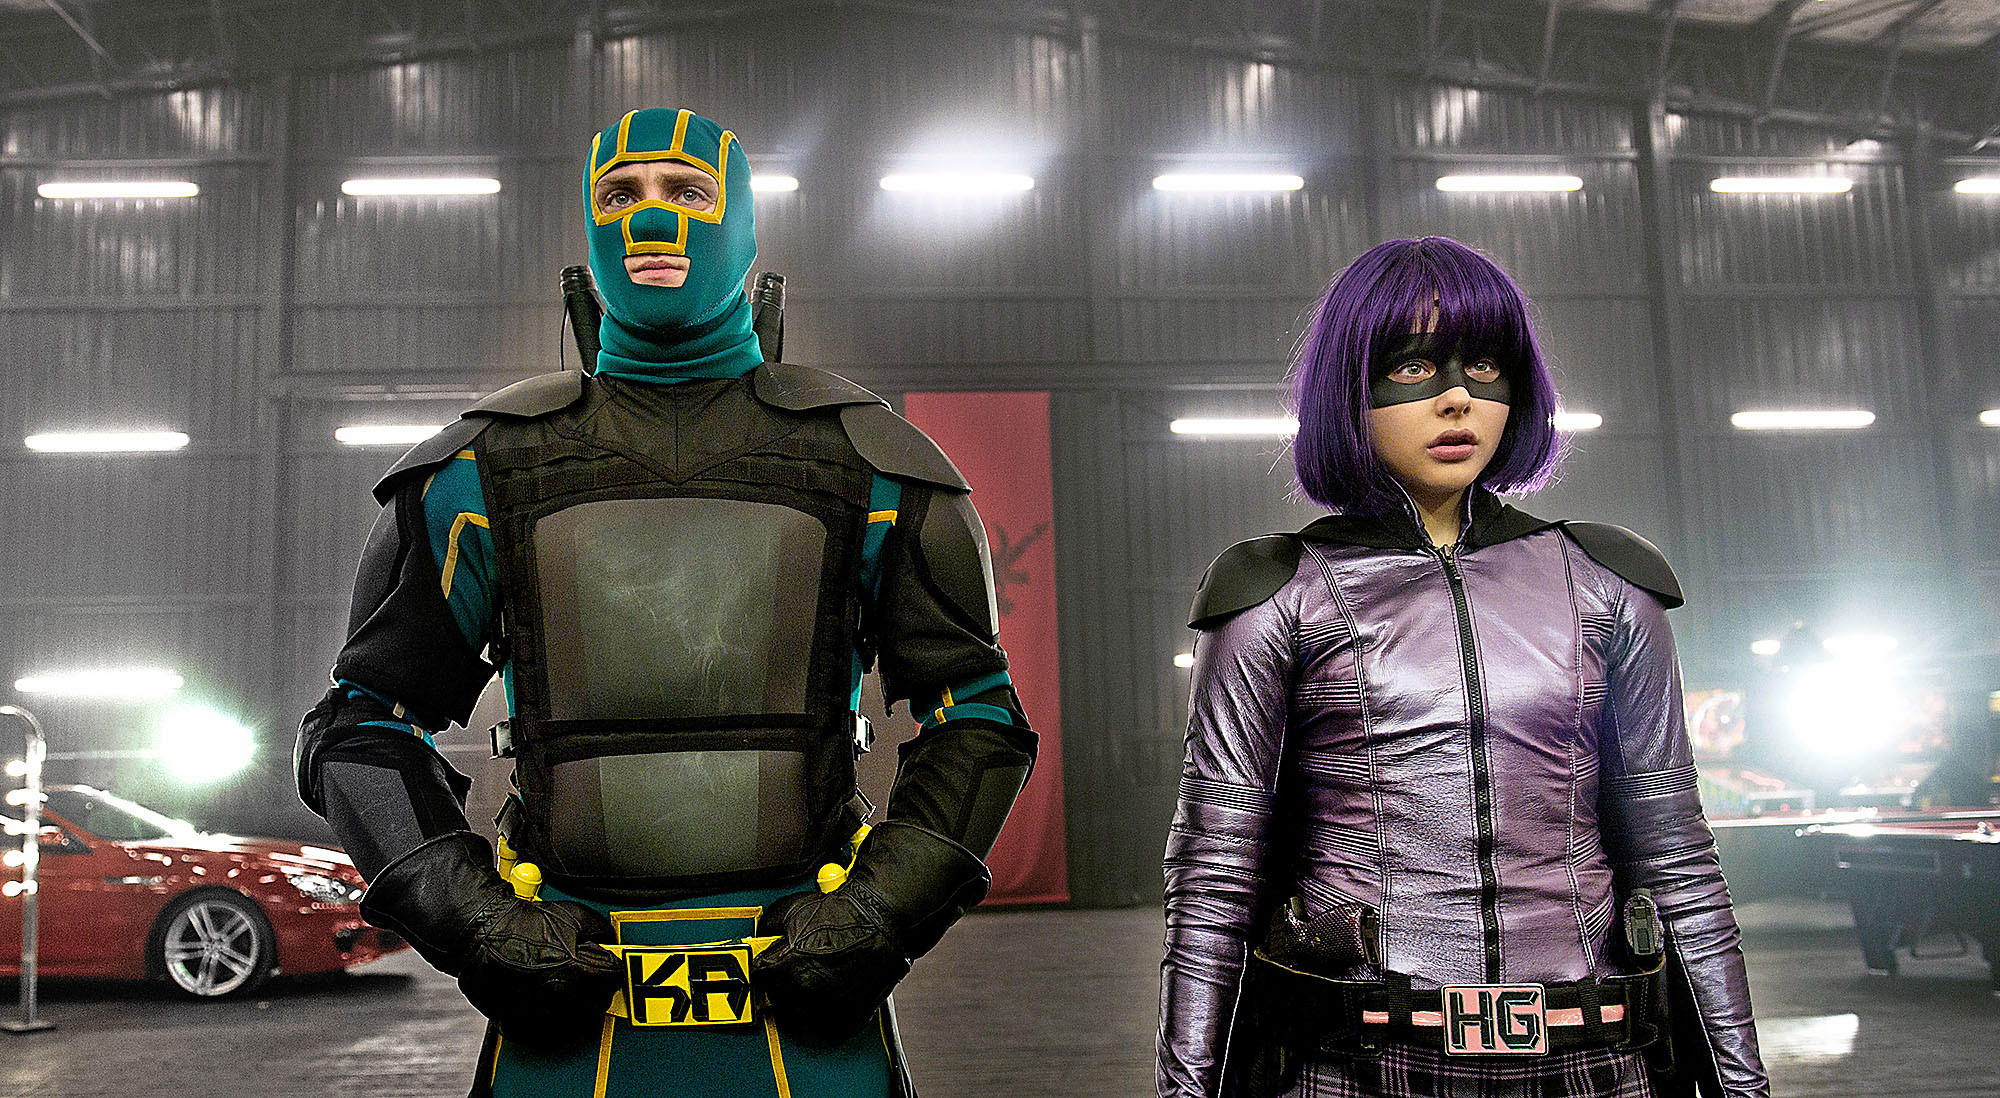 """Young masked hero Kick-Ass (Aaron Taylor-Johnson) and the blade-wielding Hit Girl (Chlo Grace Moretz) return for the follow-up to 2010's irreverent global hit: """"Kick-Ass 2."""""""